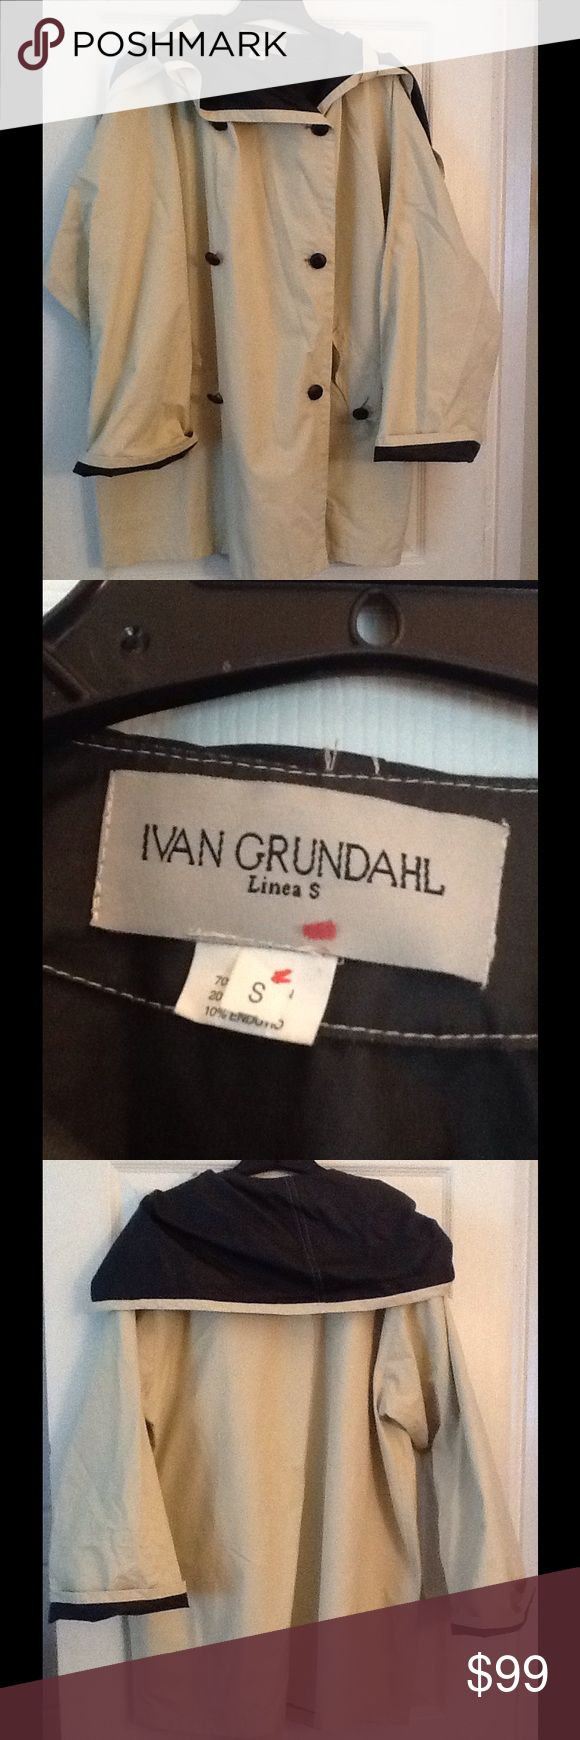 IVAN GRUNDAHL TRENCH RAIN COAT JACKET, AMAZING! Ivan GRUNDAHL sz Small trench style jacket. Beige with black collar.  Nice condition, minor marks. Not visible when wearing. Just needs to be washed. Cotton/nylon blend. Amazing jacket! Ships out right away. Ivan Grundahl Jackets & Coats Trench Coats